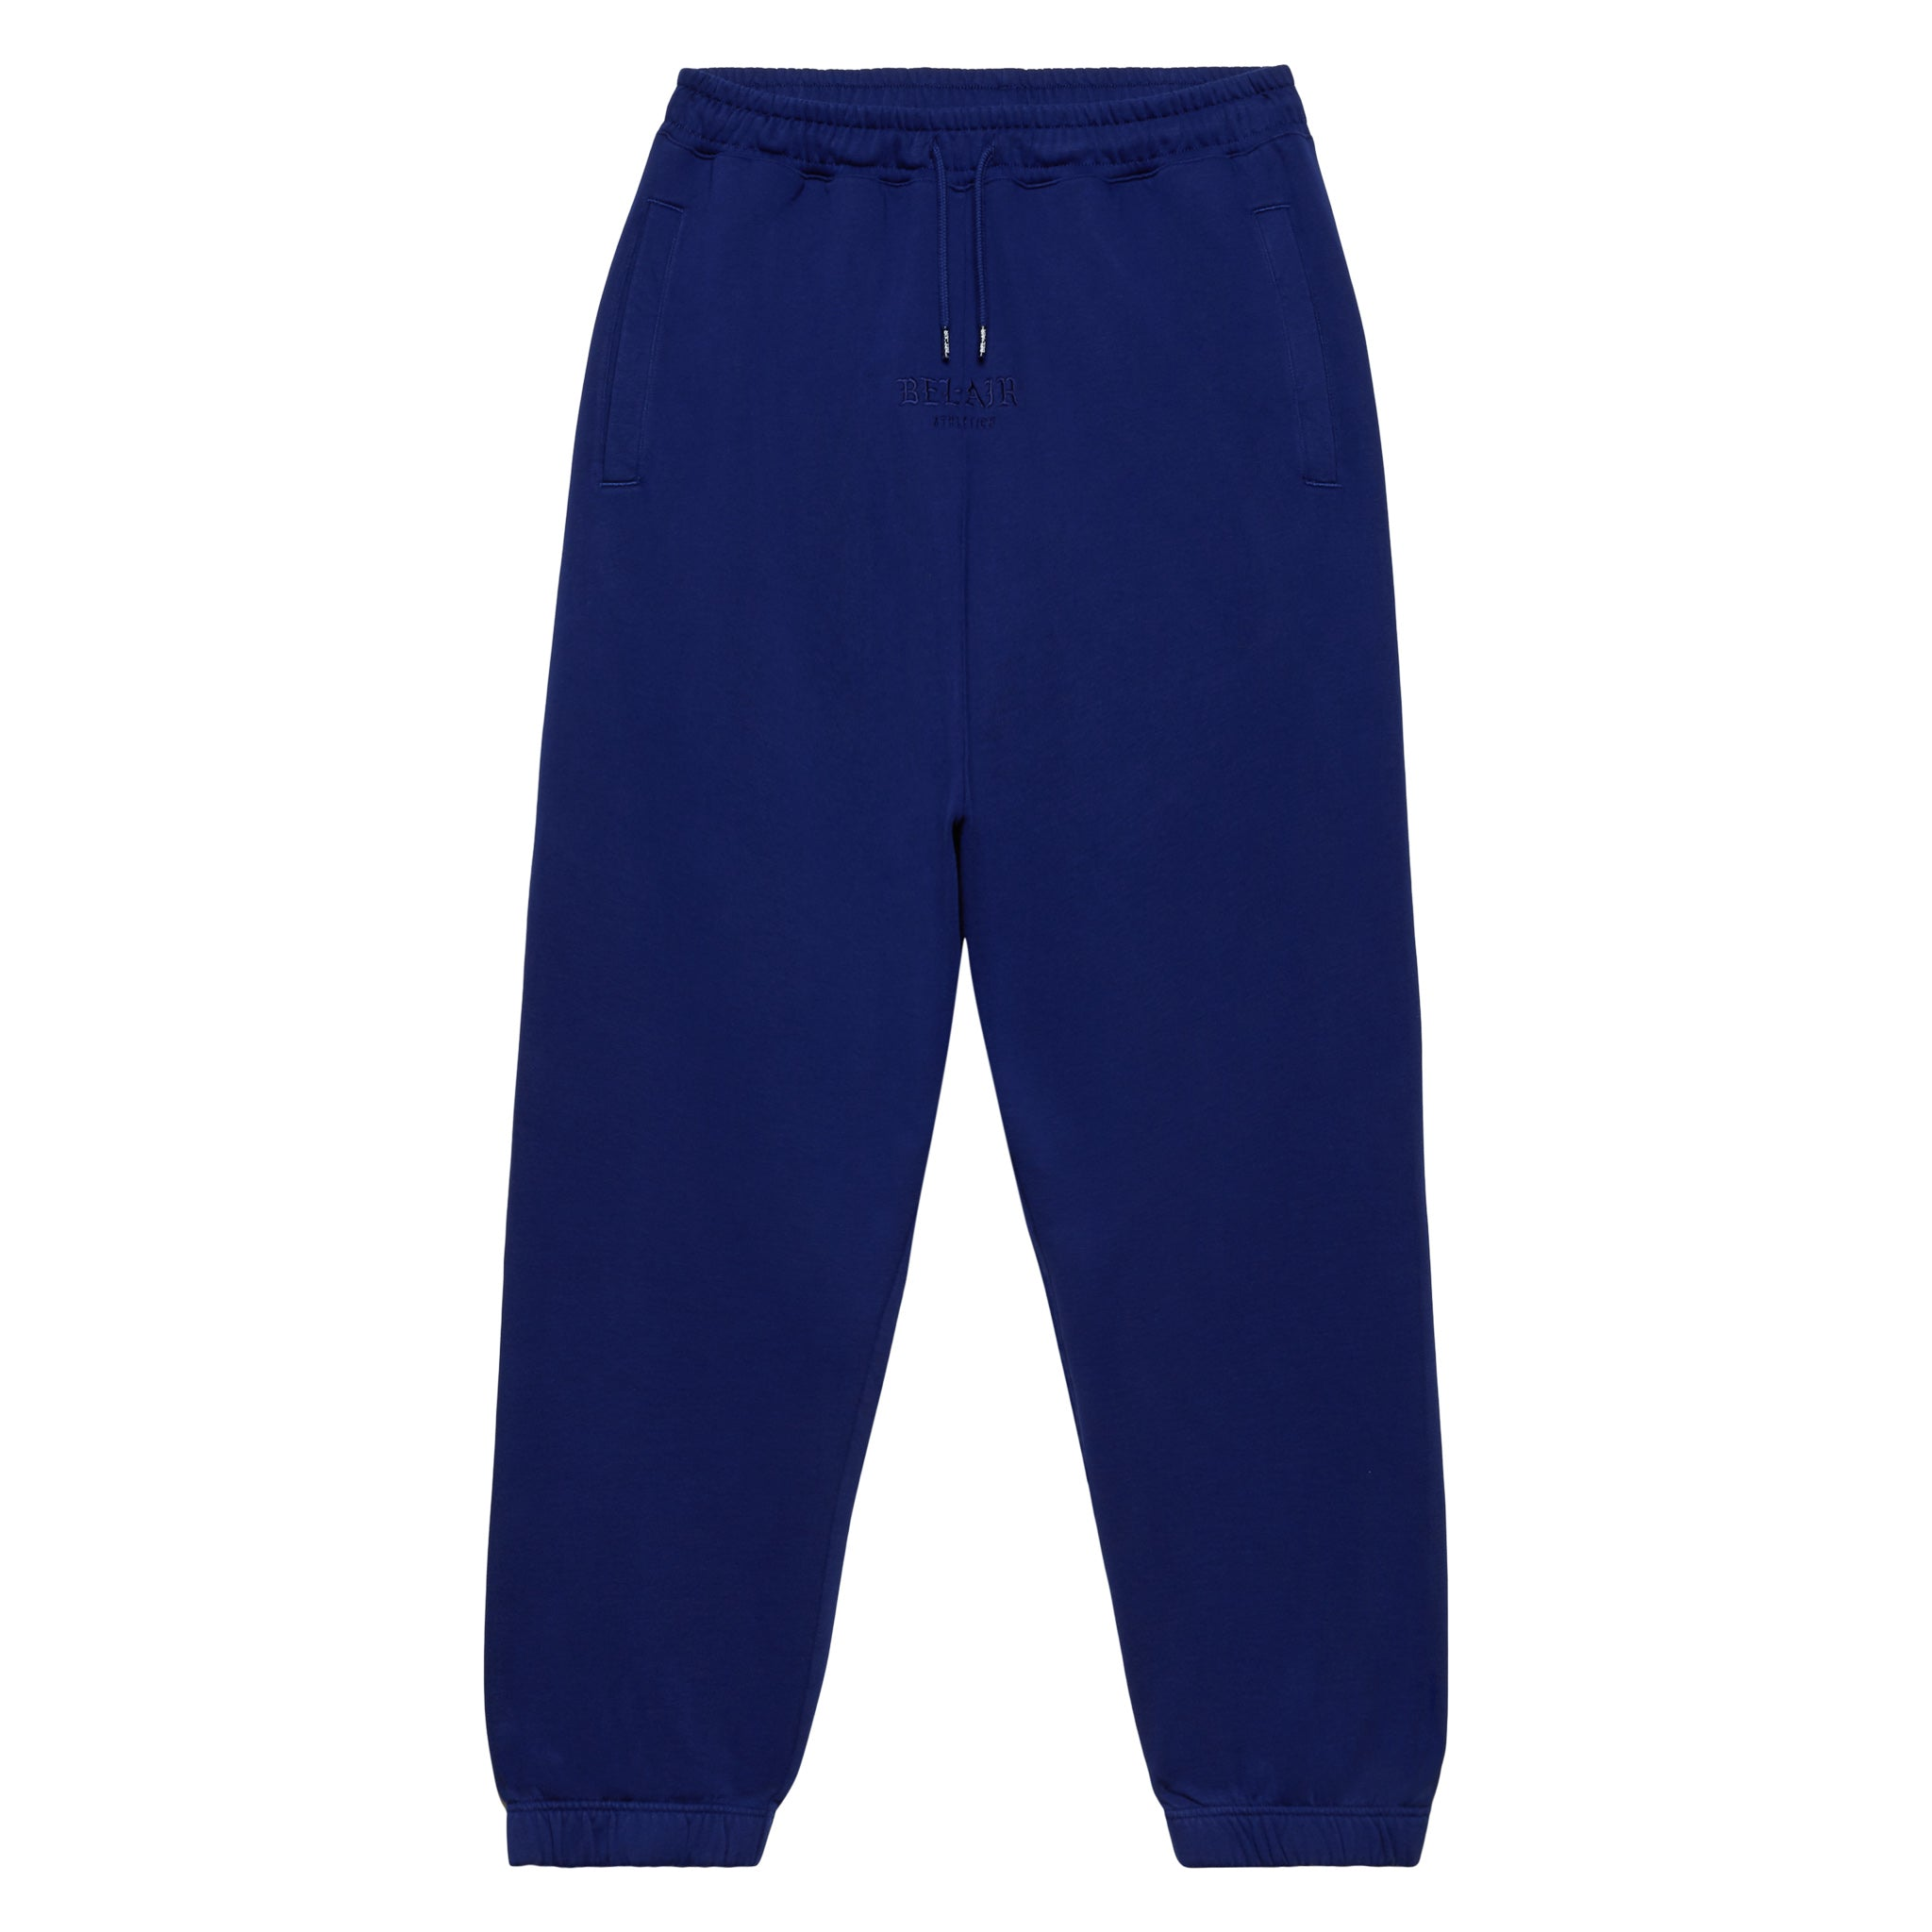 Gothic Font Sweatpant - Bel-Air Blue